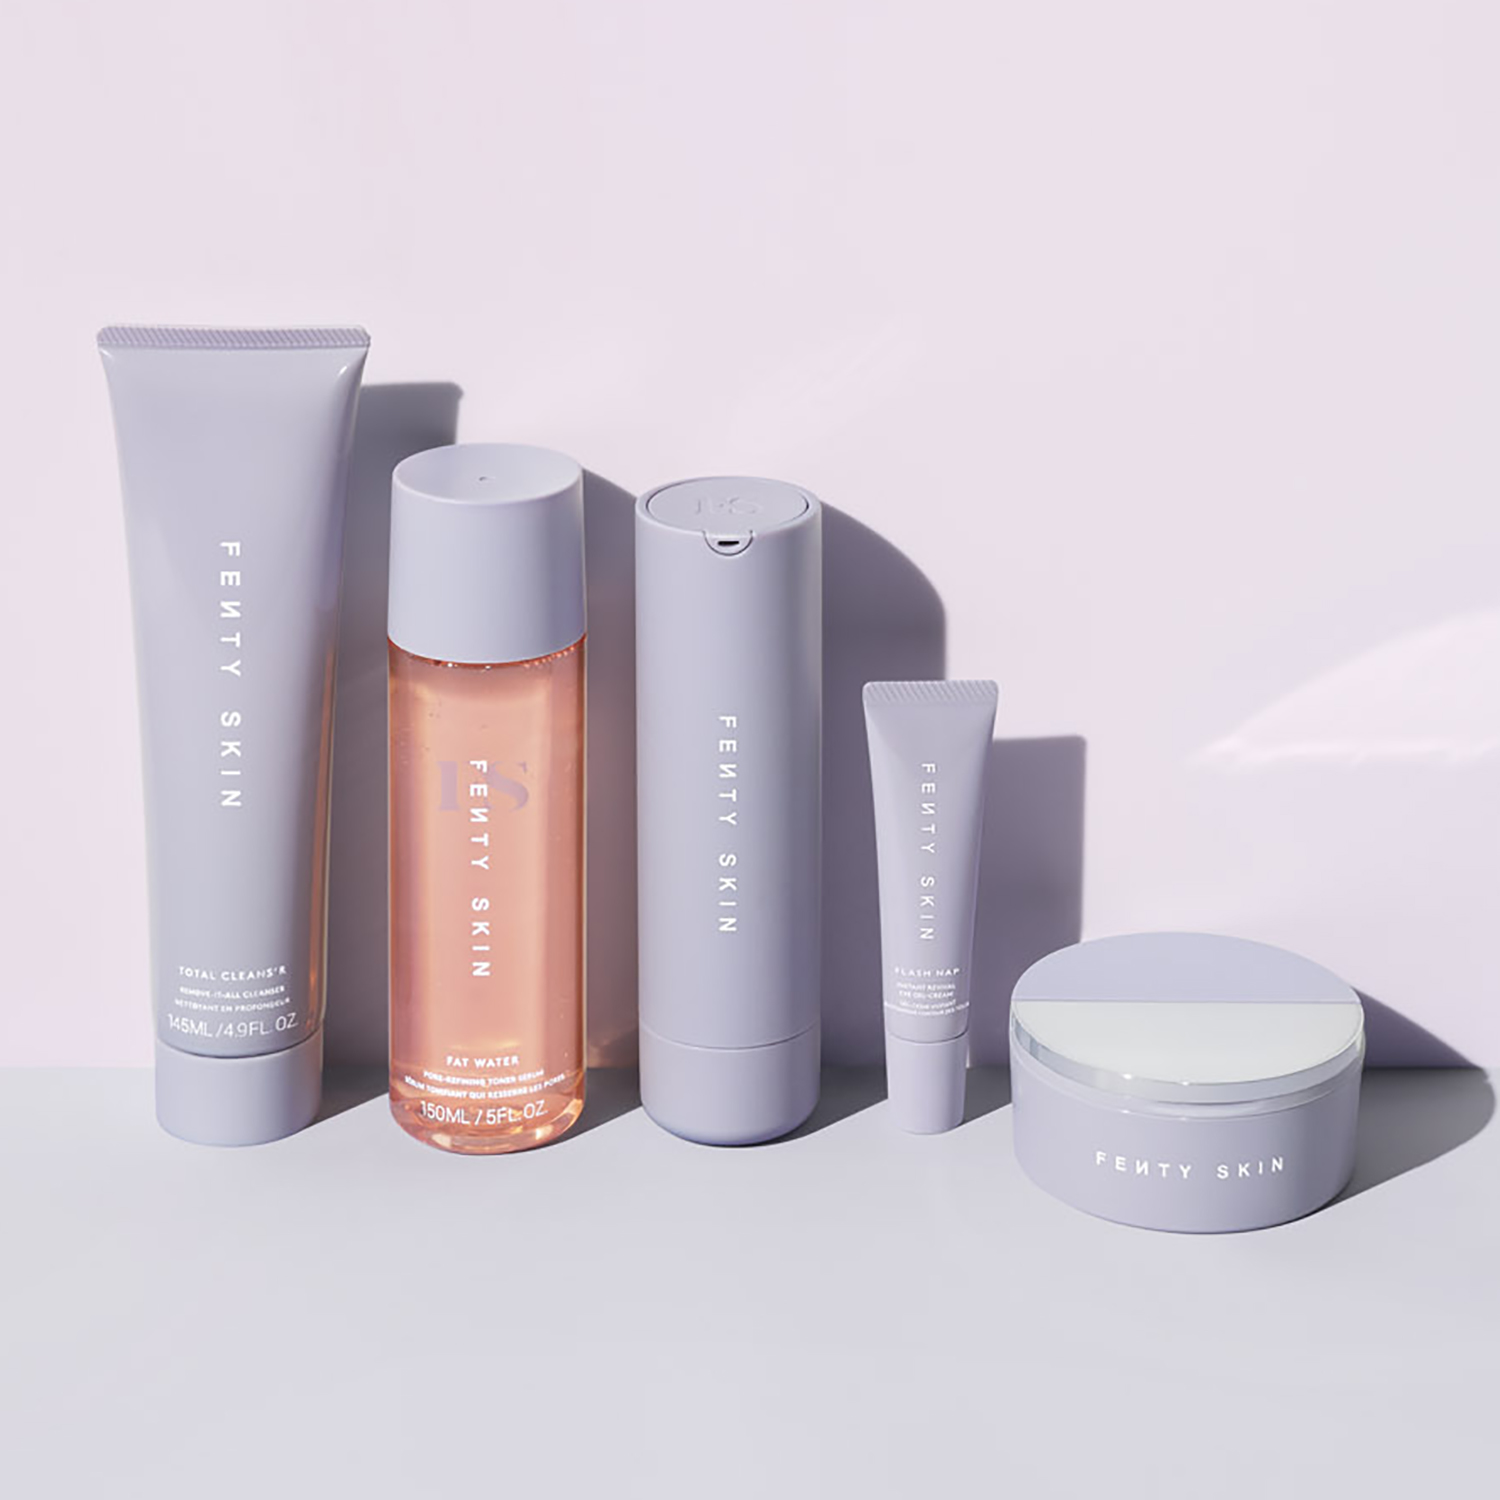 Fenty Skin products